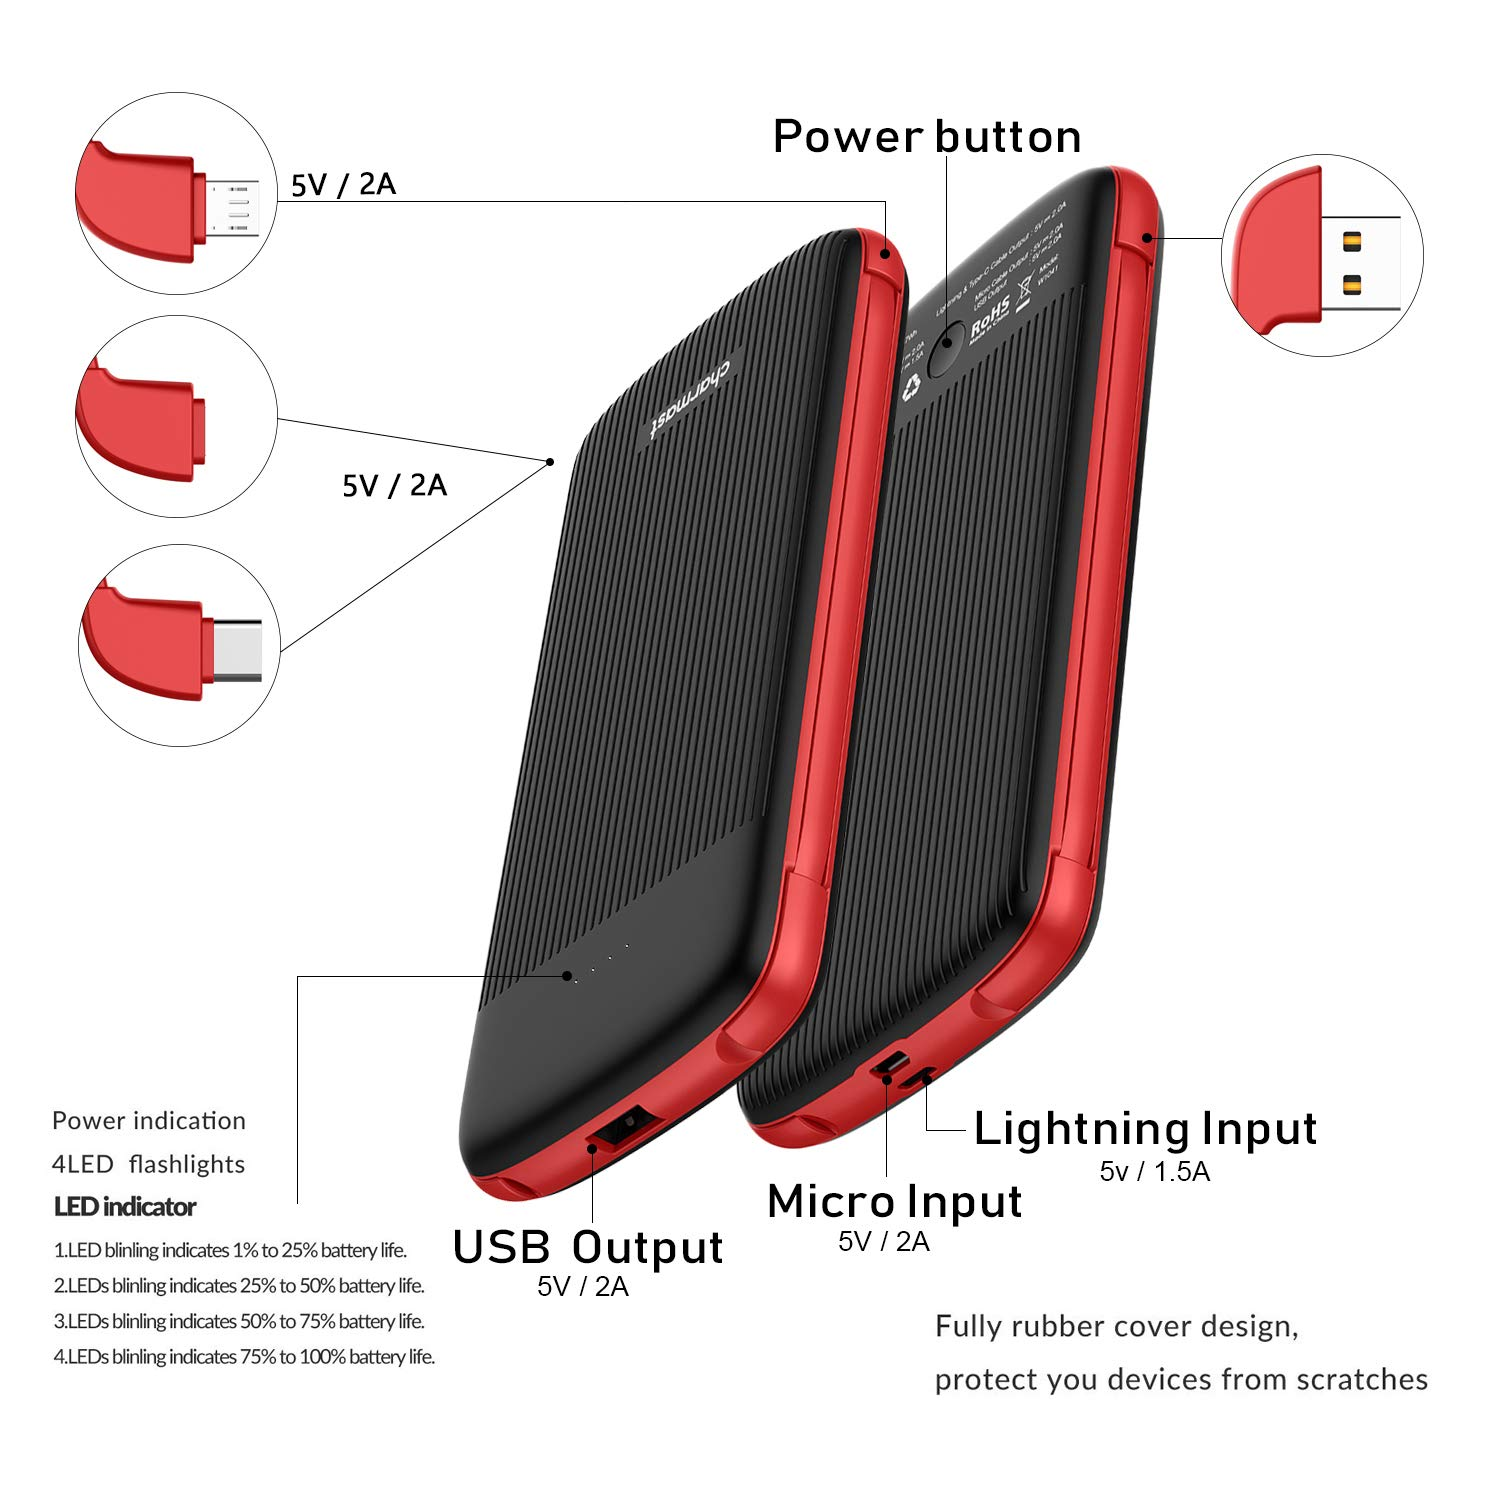 10000mah Power Bank External Battery Portable Charger Wiring Diagram 7 Pin Plug Micro Usb Wire Color Code Pack With Built In Type C And Cable For Iphone Xs Max X 8 Samsung Huawei